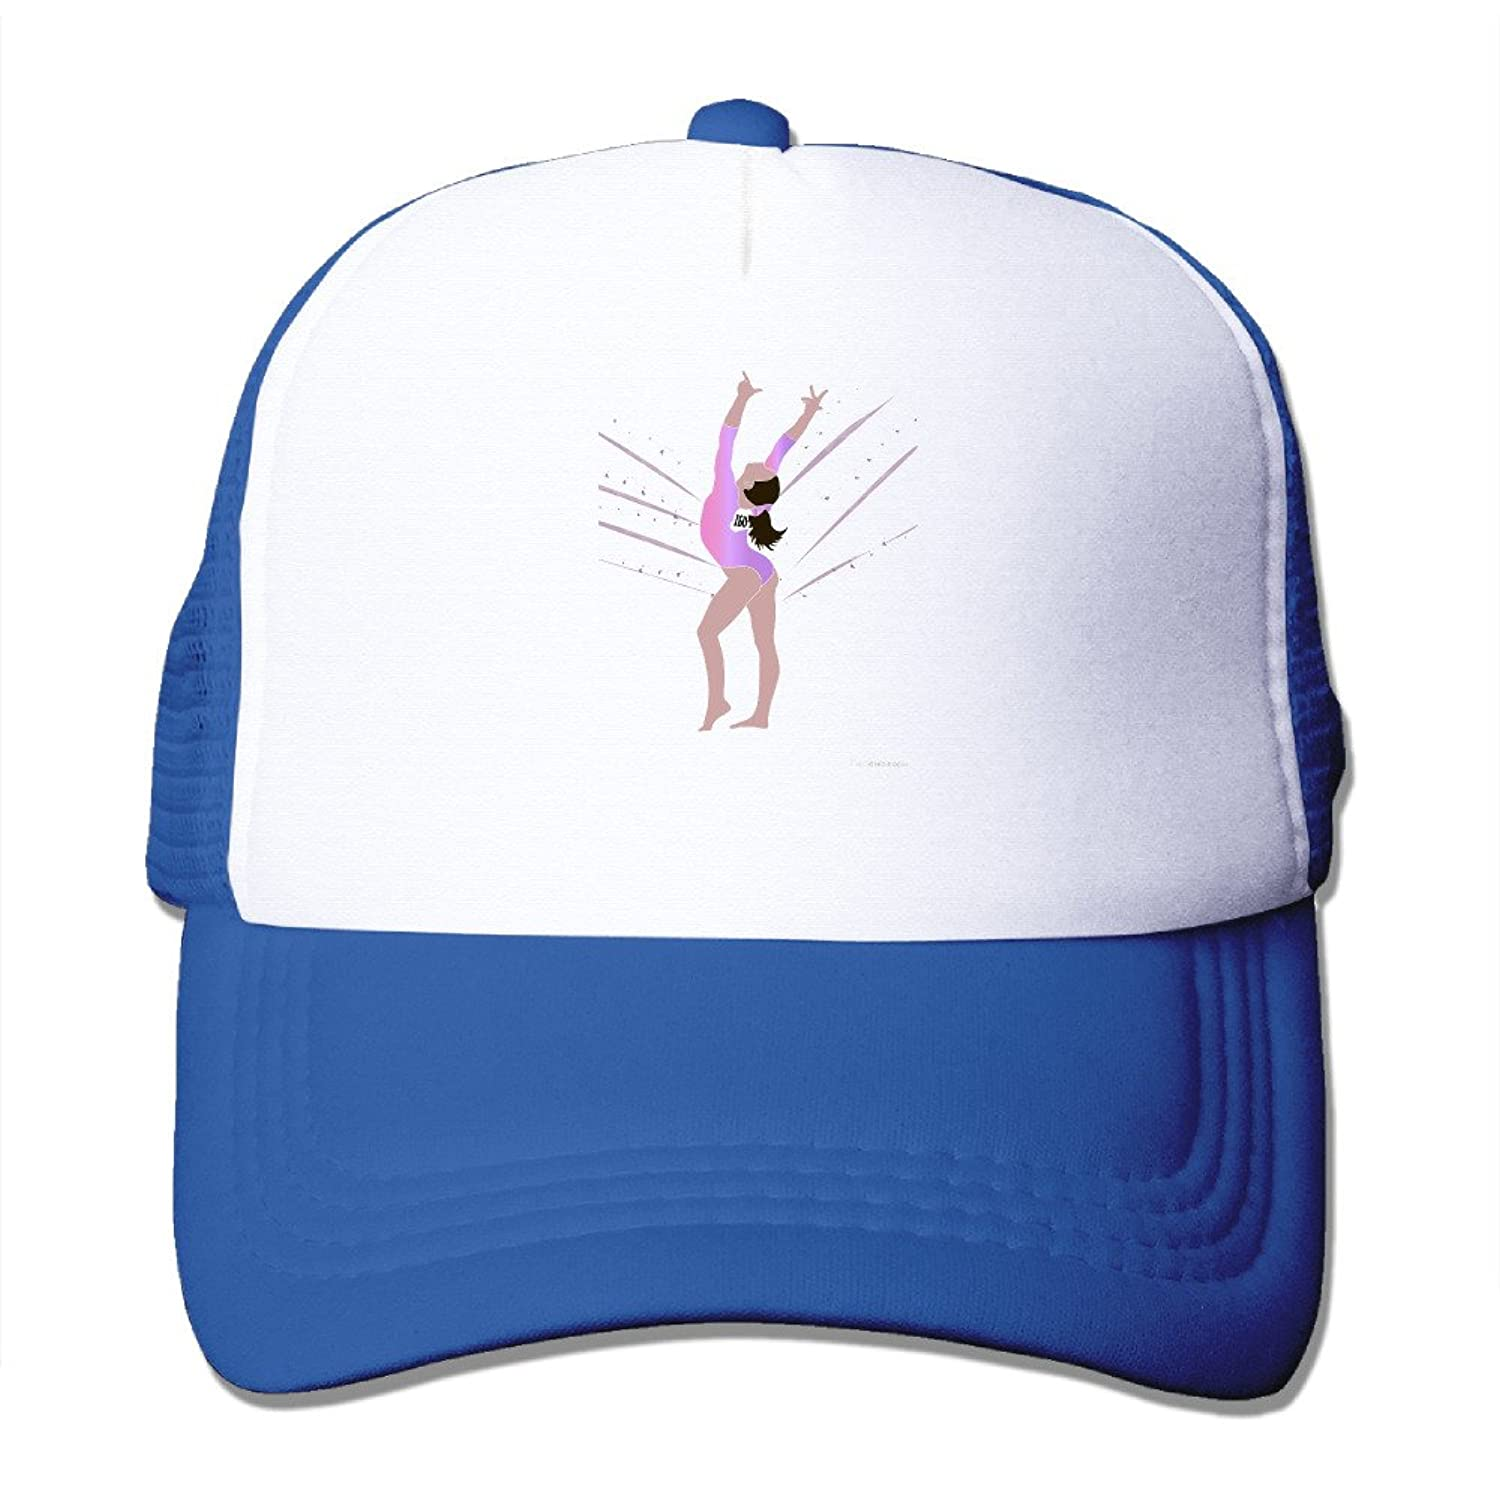 Causal Olympic Gymnast Purple Adult Nylon Adjustable Mesh Hat Leisure Hat RoyalBlue One Size Fits Most